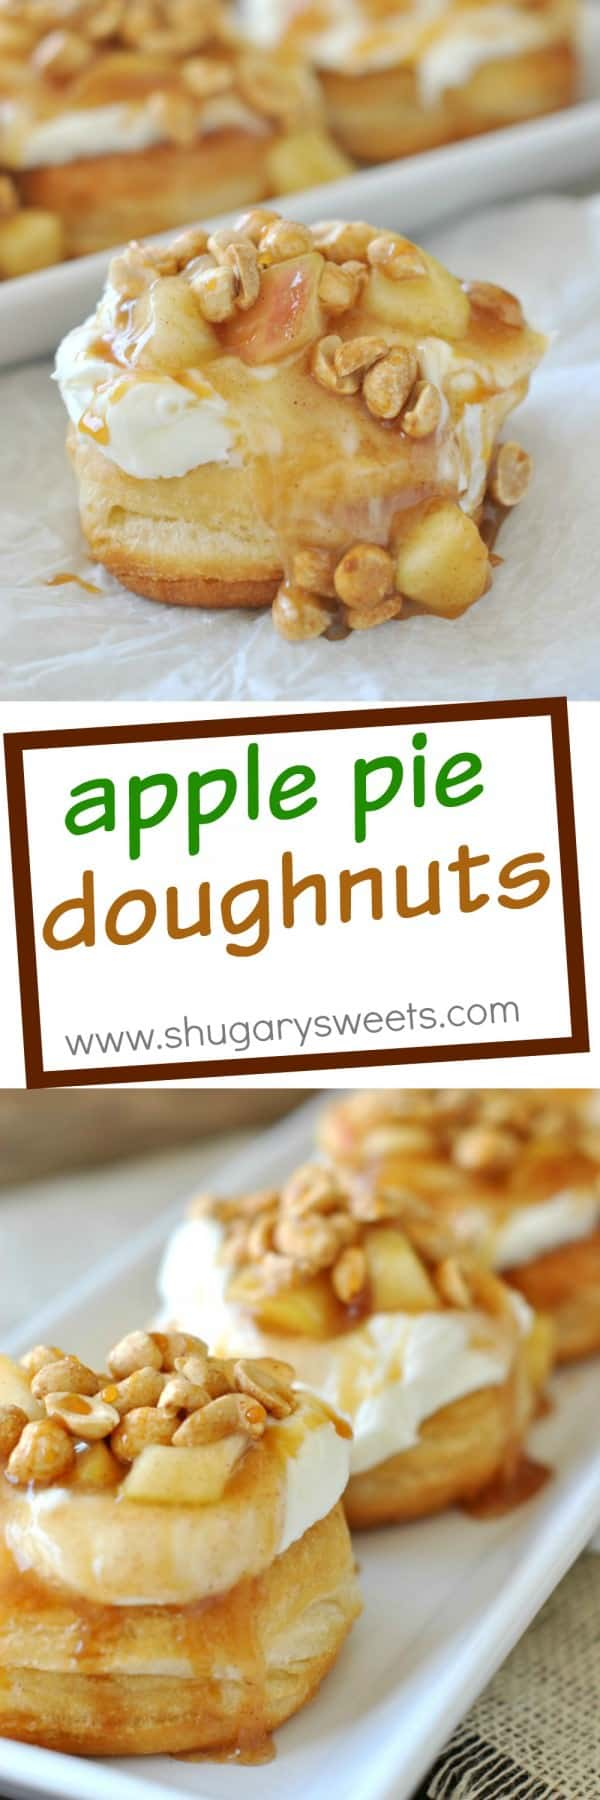 Apple Pie Doughnuts Shugary Sweets